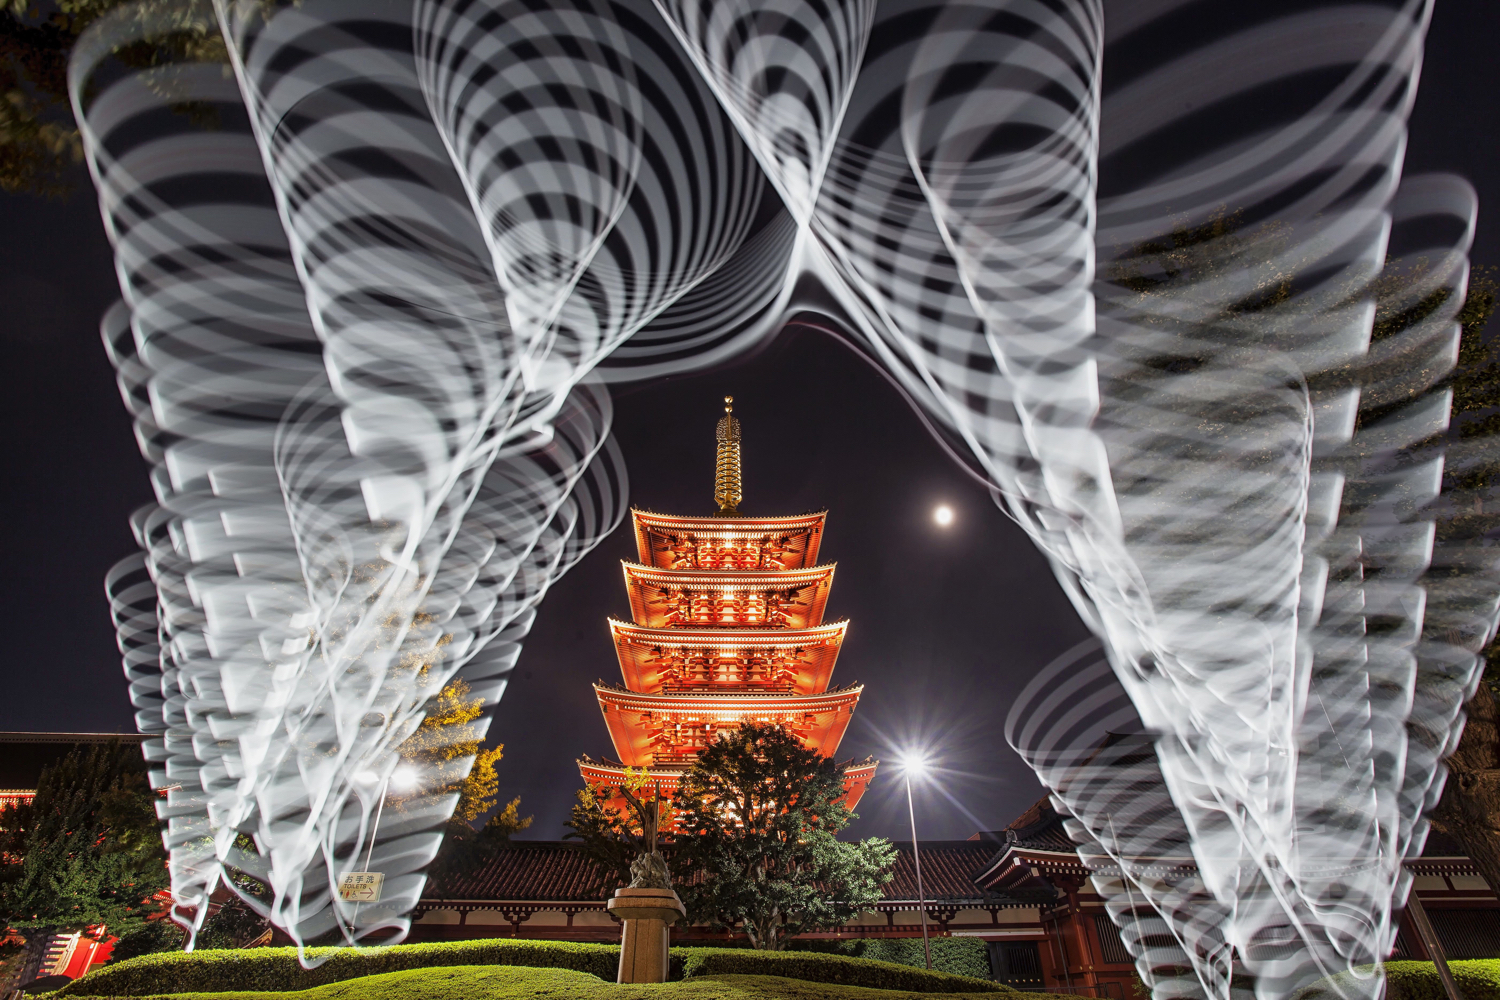 Image: In this photo a pixelstick has been used to light paint around the pagoda.